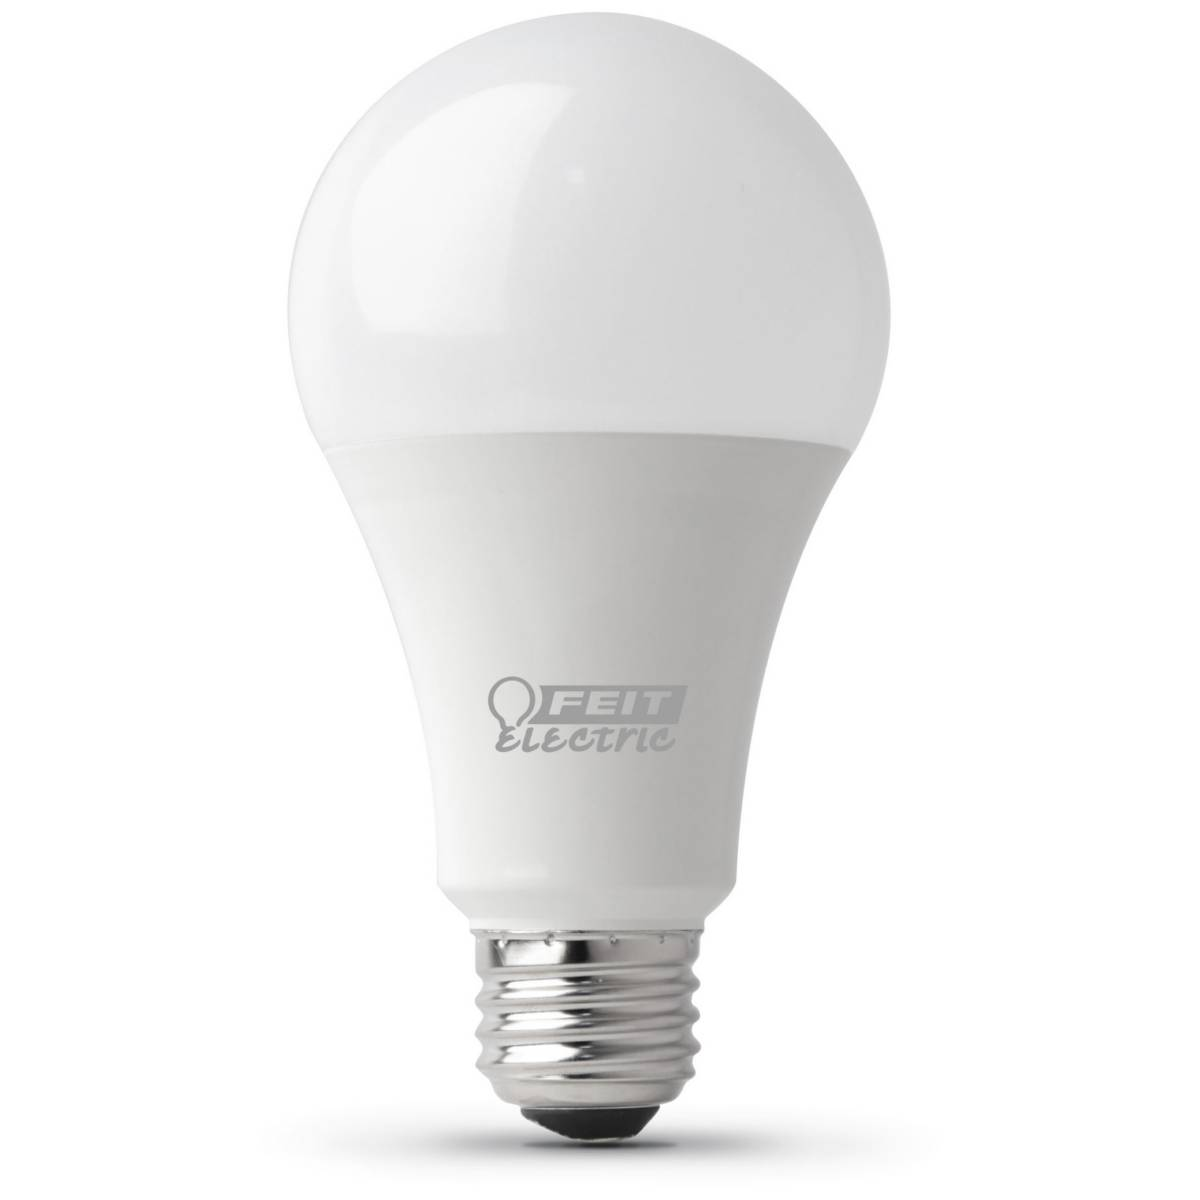 Lamps And More: LED, CFL, Incandescent And More